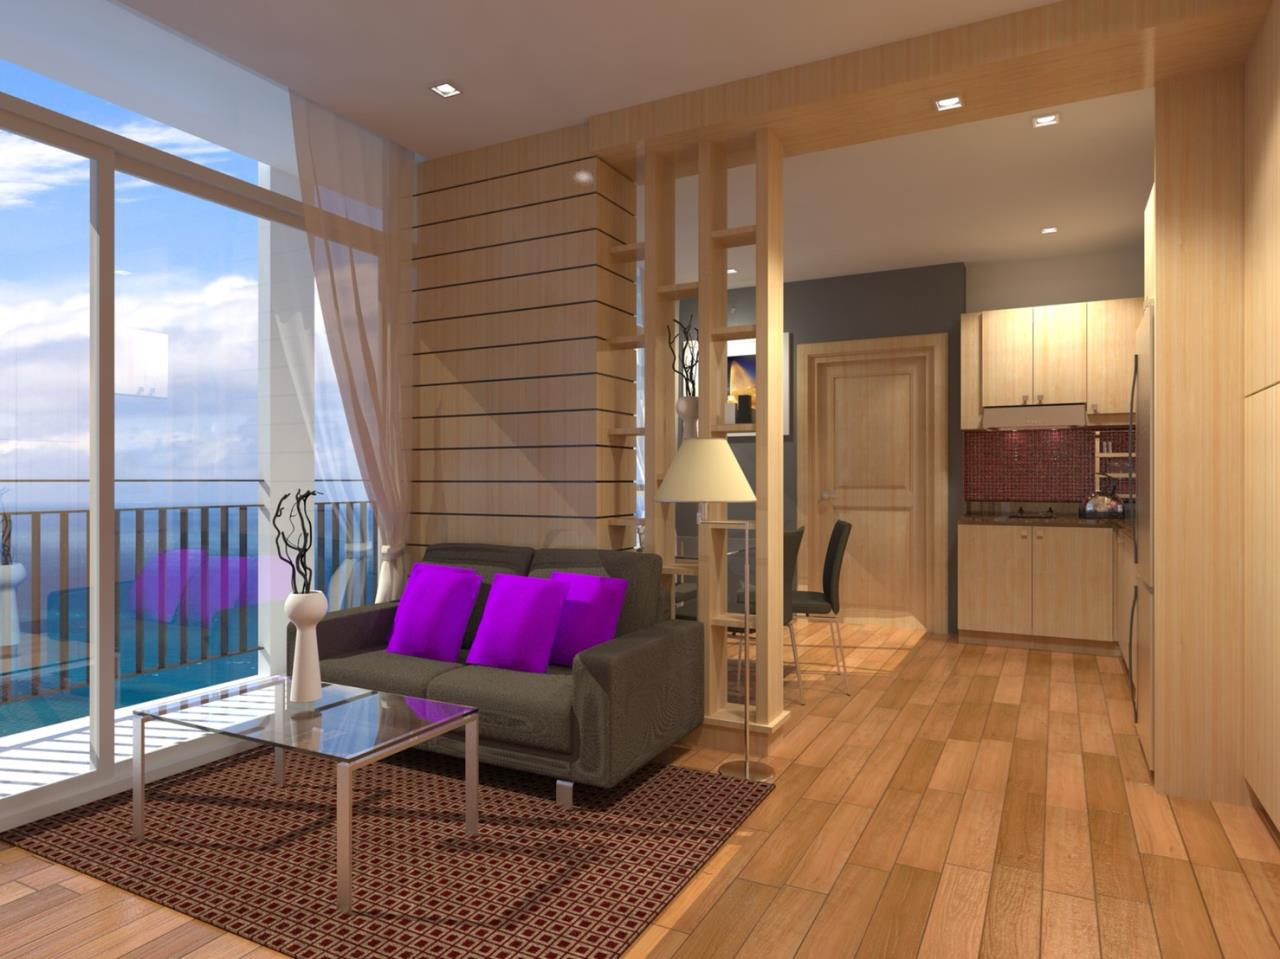 Signature Realty ( Thailand ) Co Ltd Agency's Furnished 2bedroom 40 sq.m condo floor 11-20 at The Grand Jomtein Beach Pattaya 24